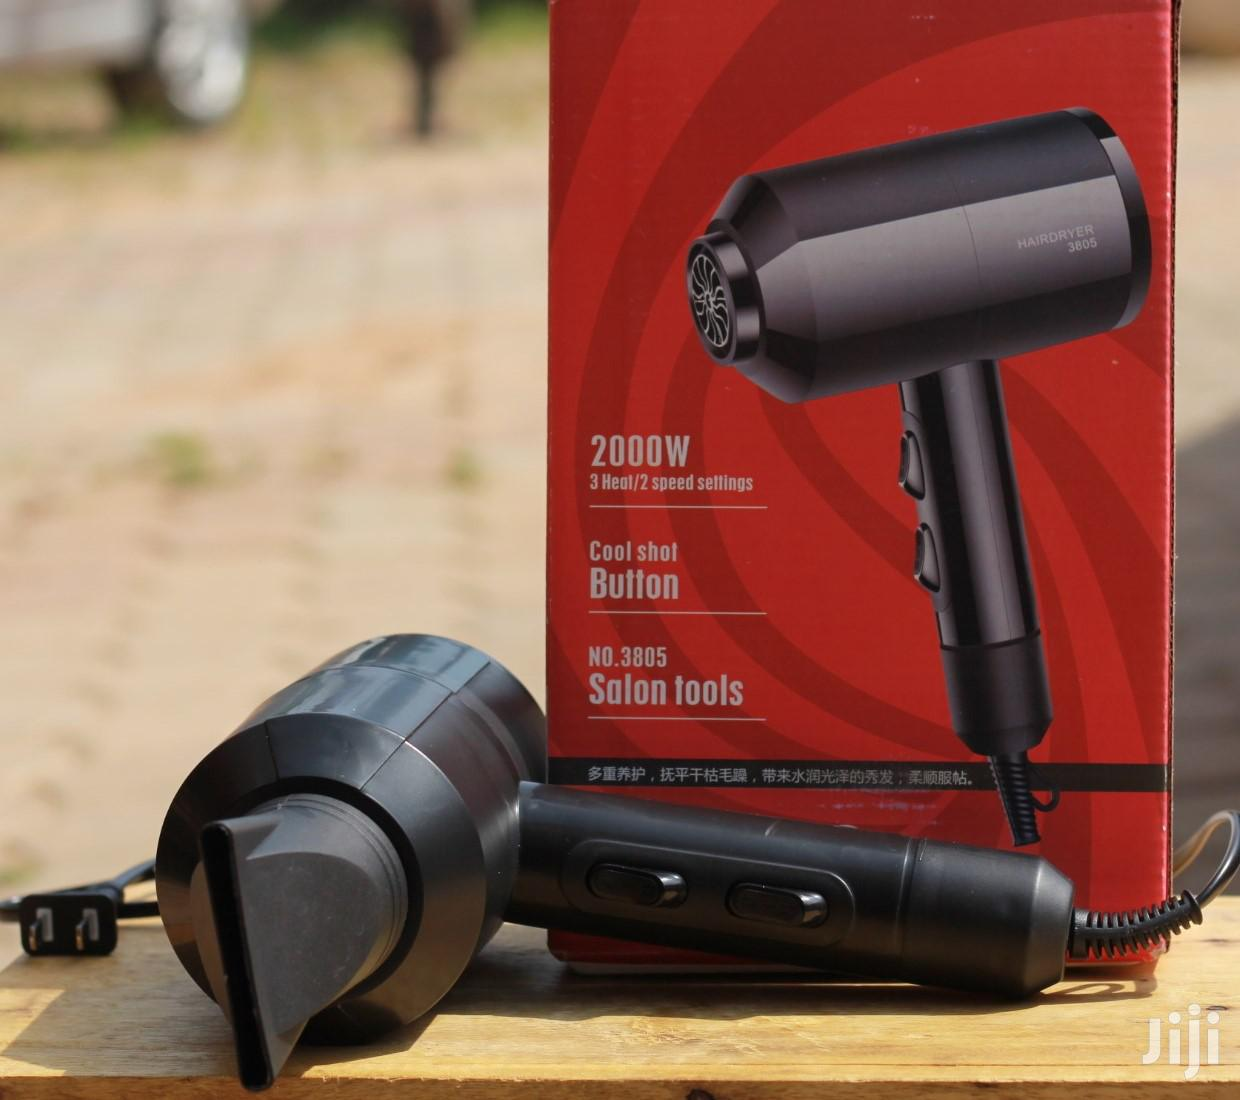 Hair Dryer | Tools & Accessories for sale in Dansoman, Greater Accra, Ghana